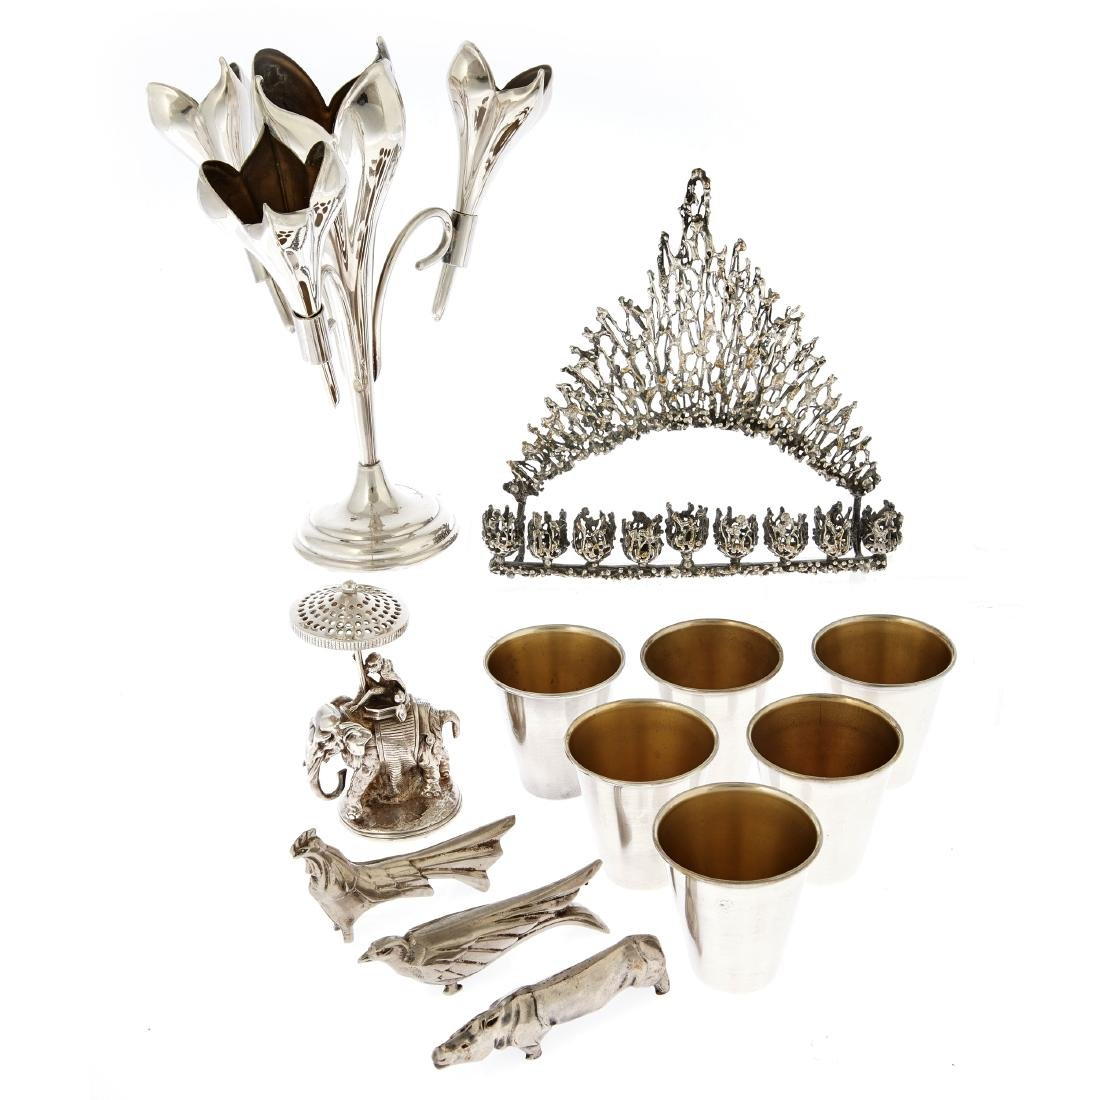 A group of plated items